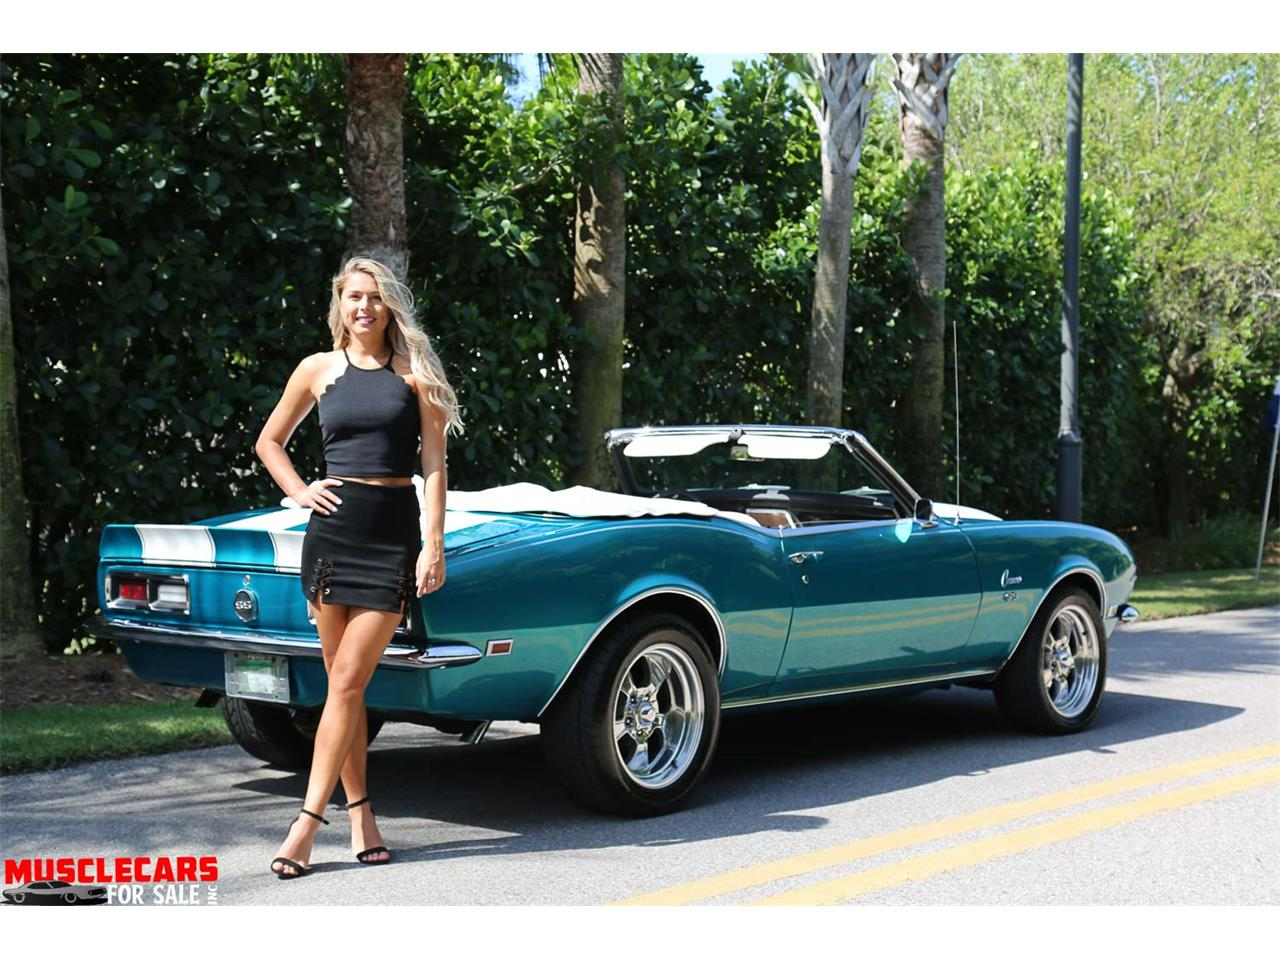 Large Picture of Classic 1968 Chevrolet Camaro SS - $37,500.00 Offered by Muscle Cars For Sale Inc. - PNWZ